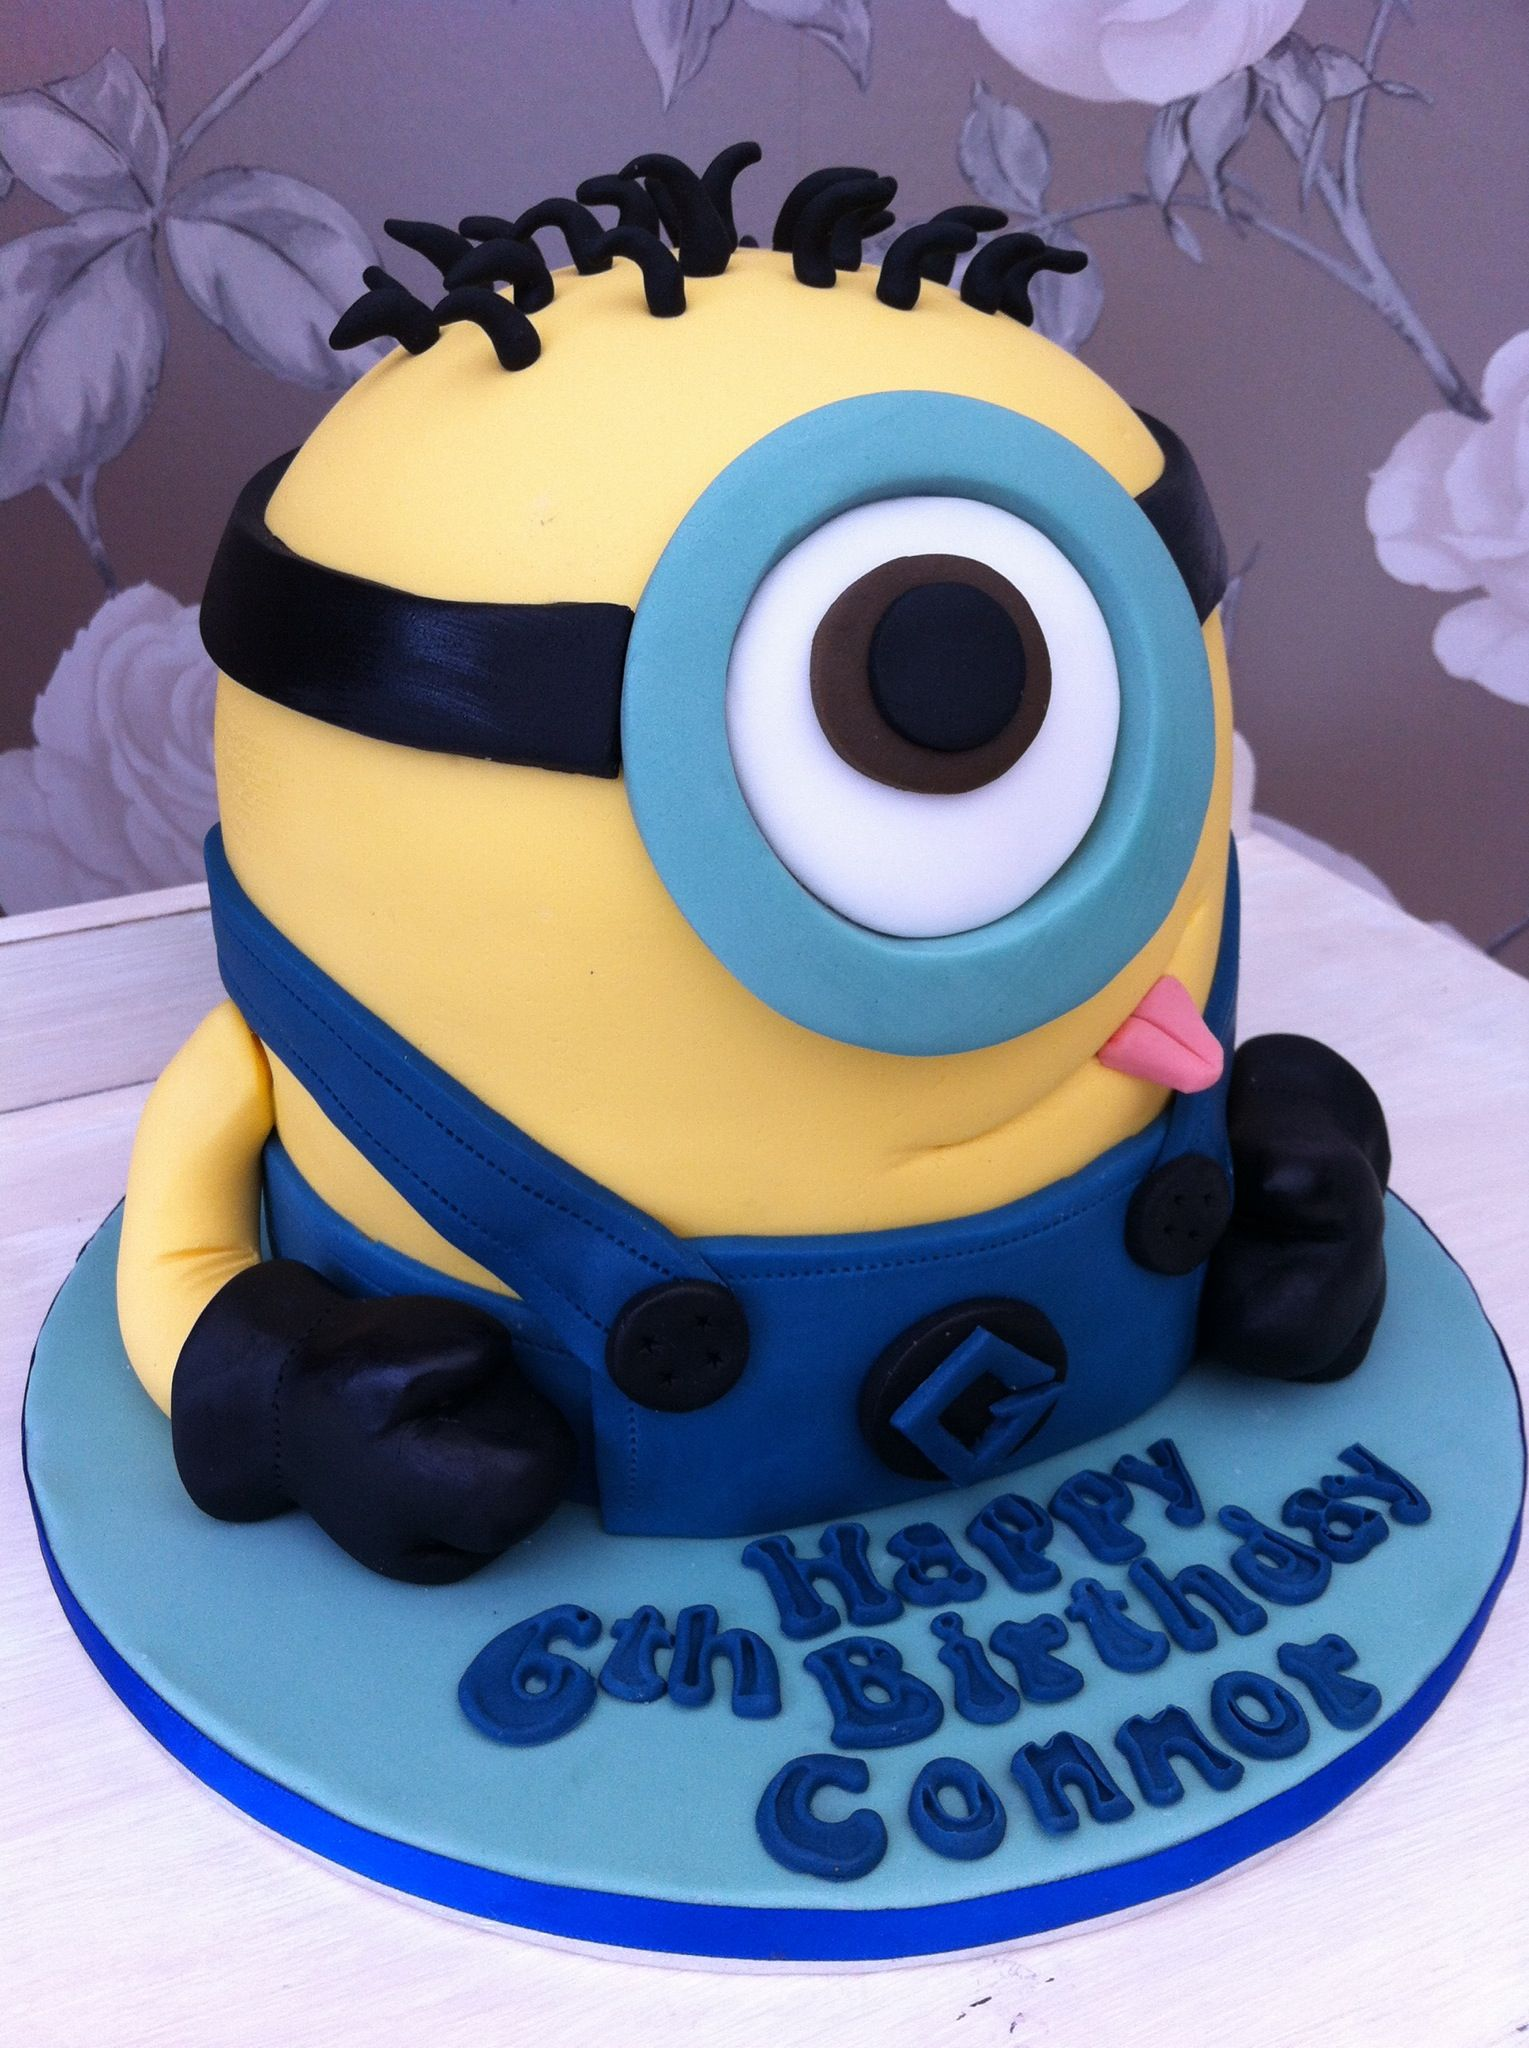 Despicable me minion themed cakeonly thing is my Konner is not